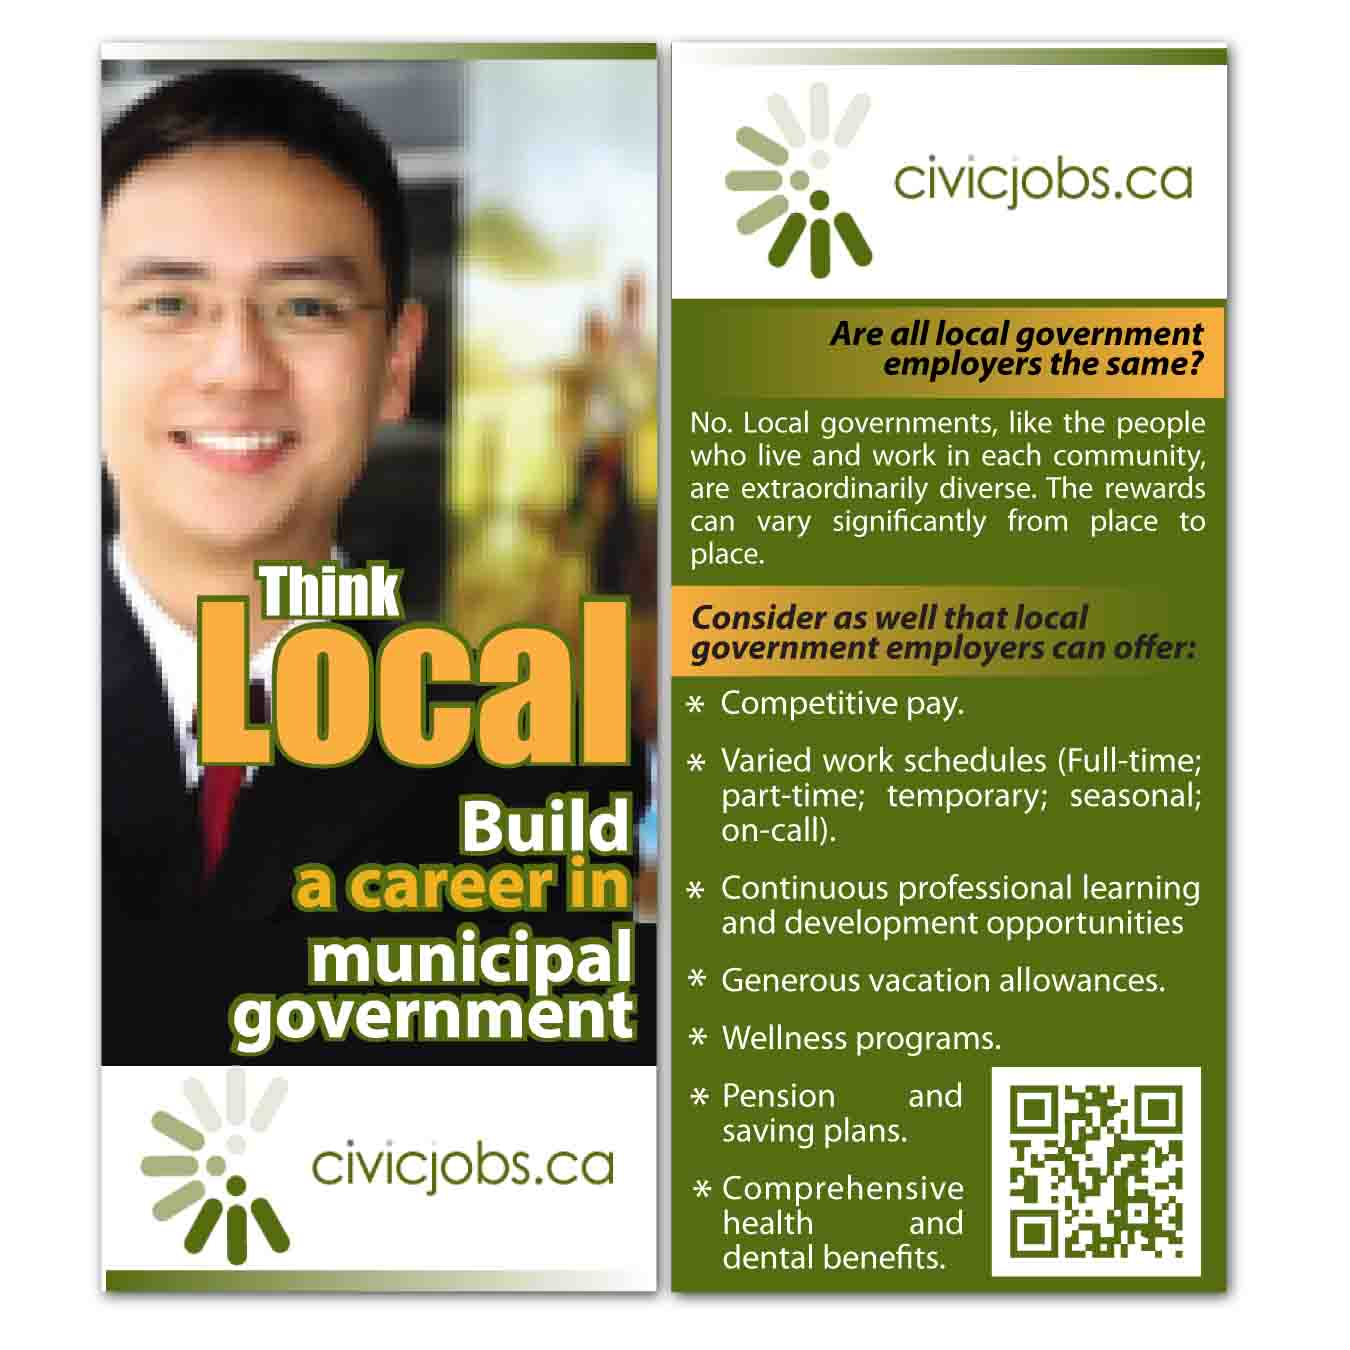 "Print Design by Agung Nugroho - Entry No. 21 in the Print Design Contest Print Design Wanted for CivicJobs.ca - 4"" X 9"" rack card, 2 sided, print ready.."